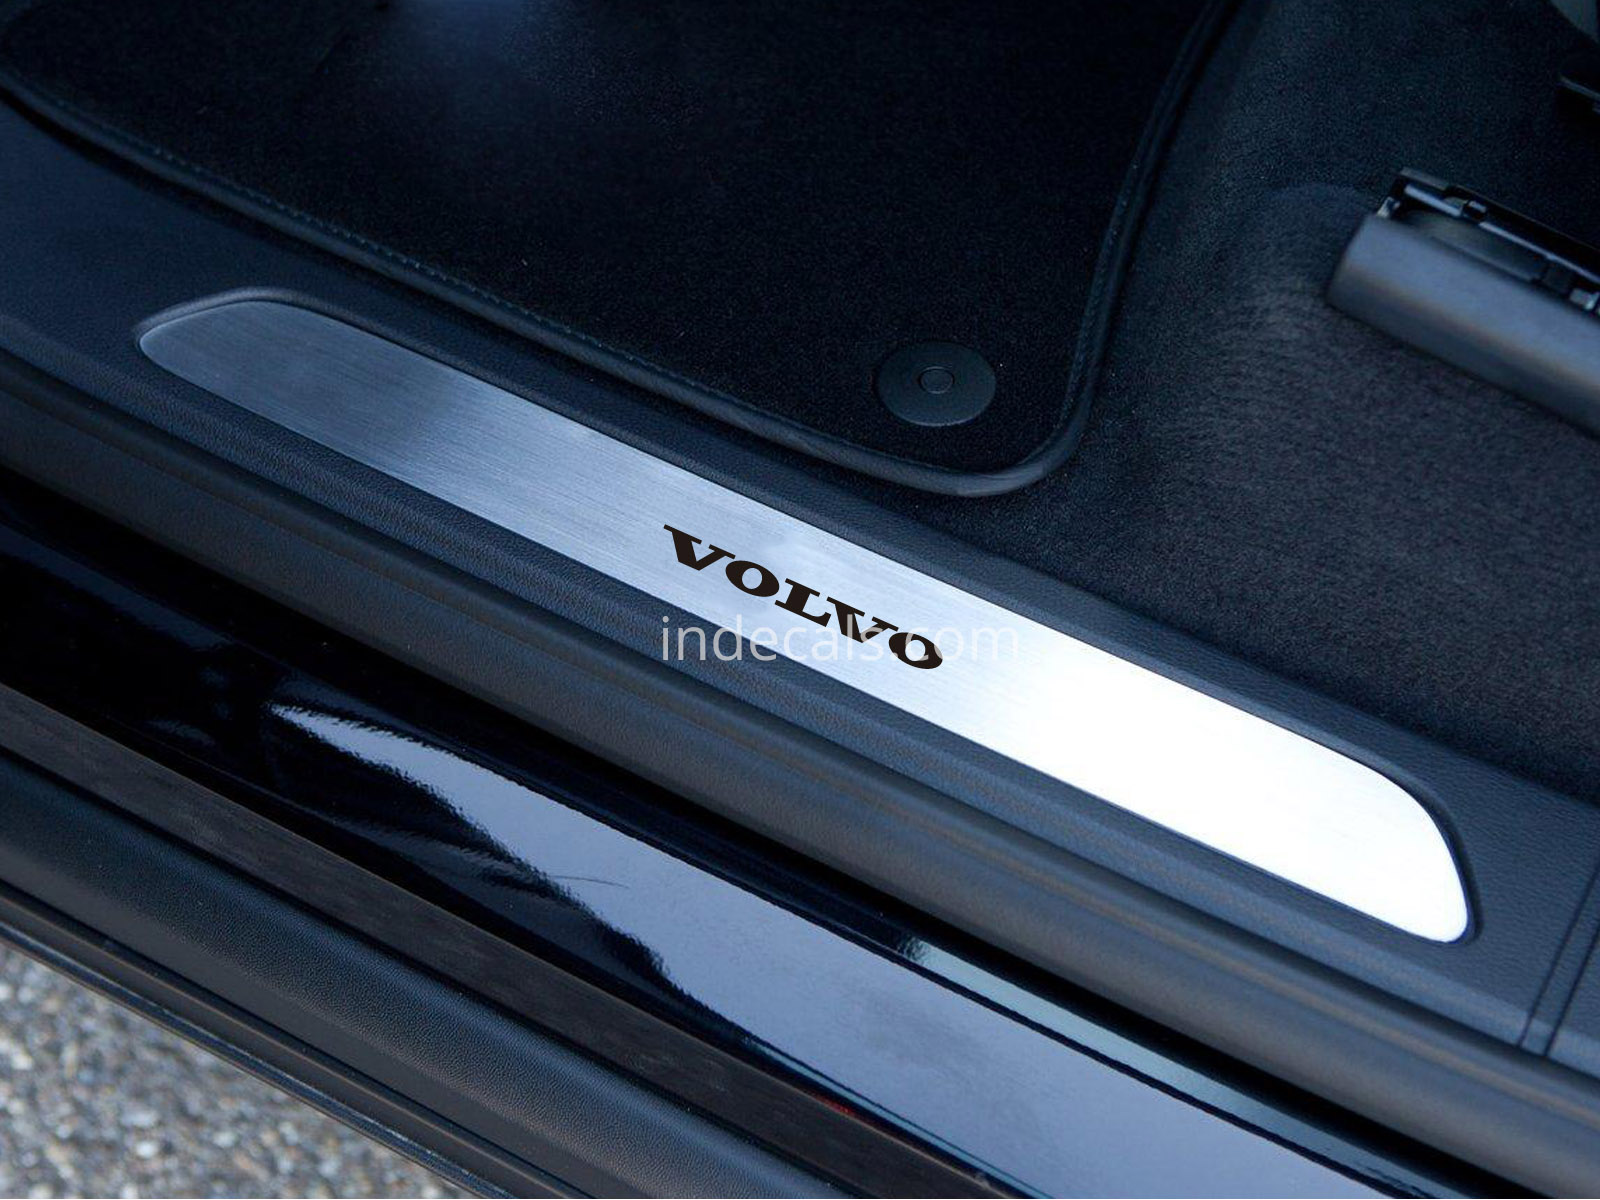 6 x Volvo Stickers for Door Sills - Black